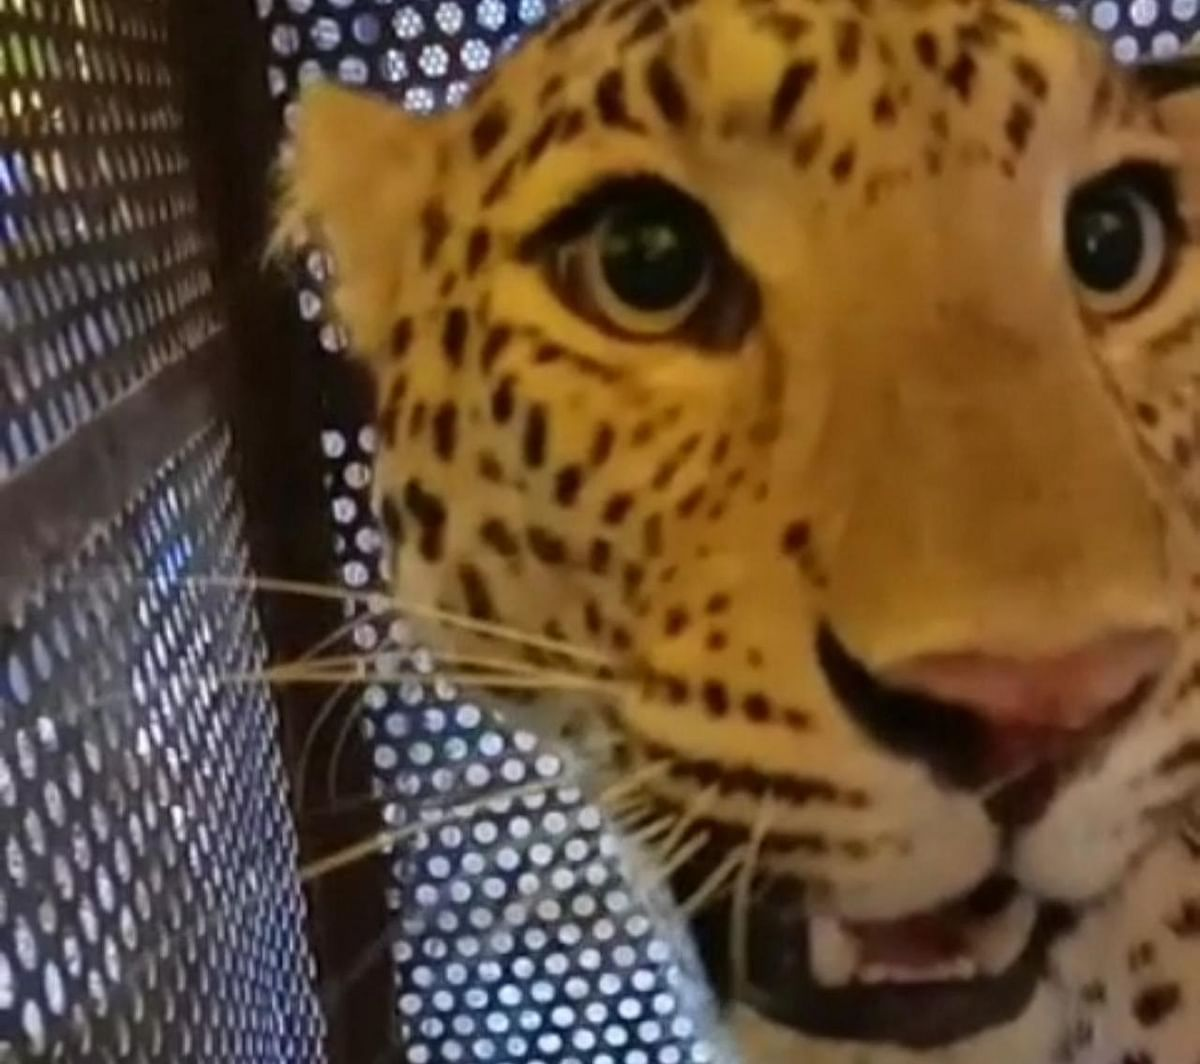 Madhya Pradesh: Young leopardess falls for goat in Umariya forest near Indore, trapped and treated